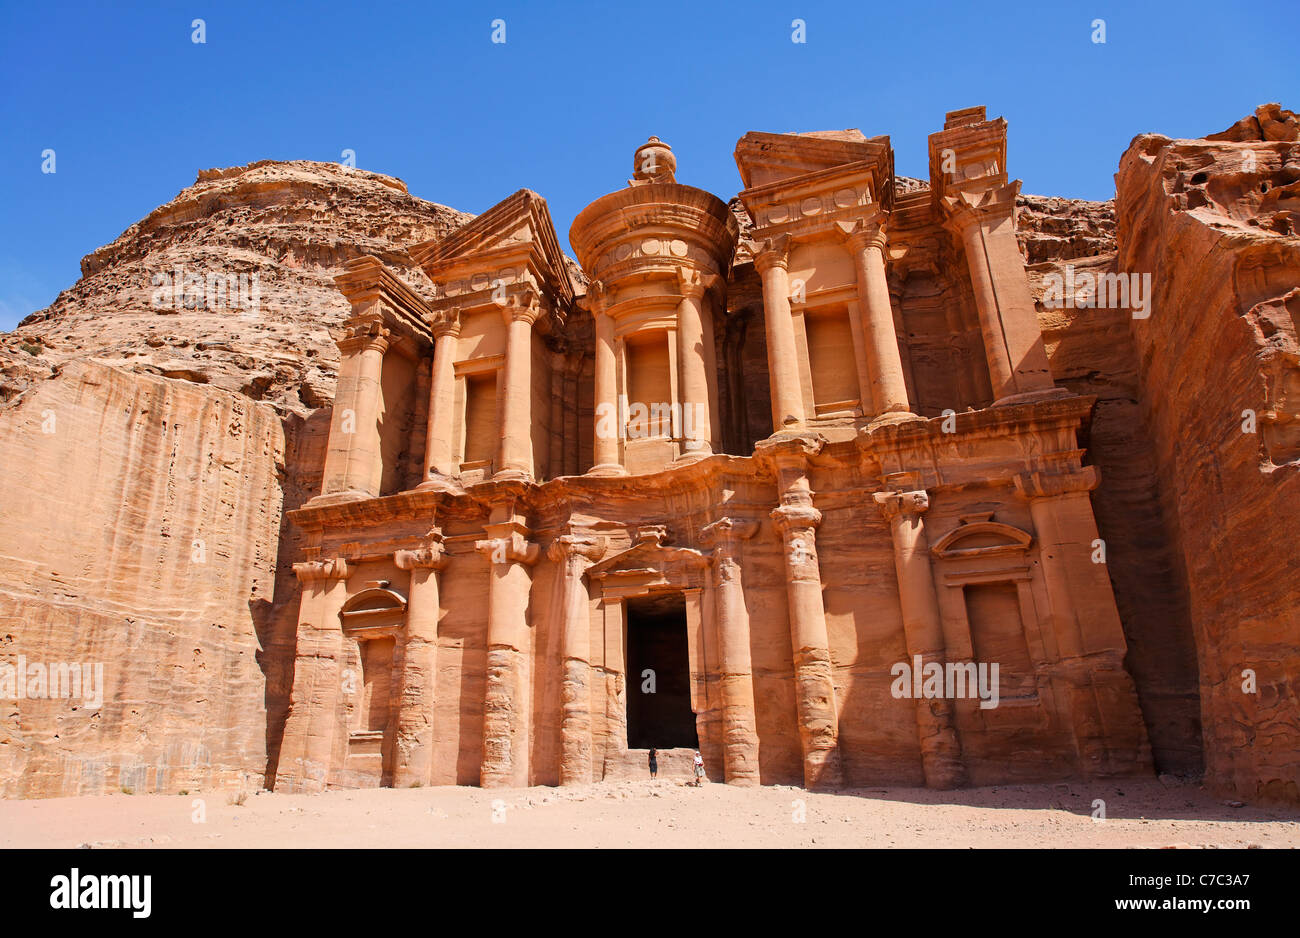 The Monastery, sculpted out of the rock, at Petra, Jordan Stock Photo